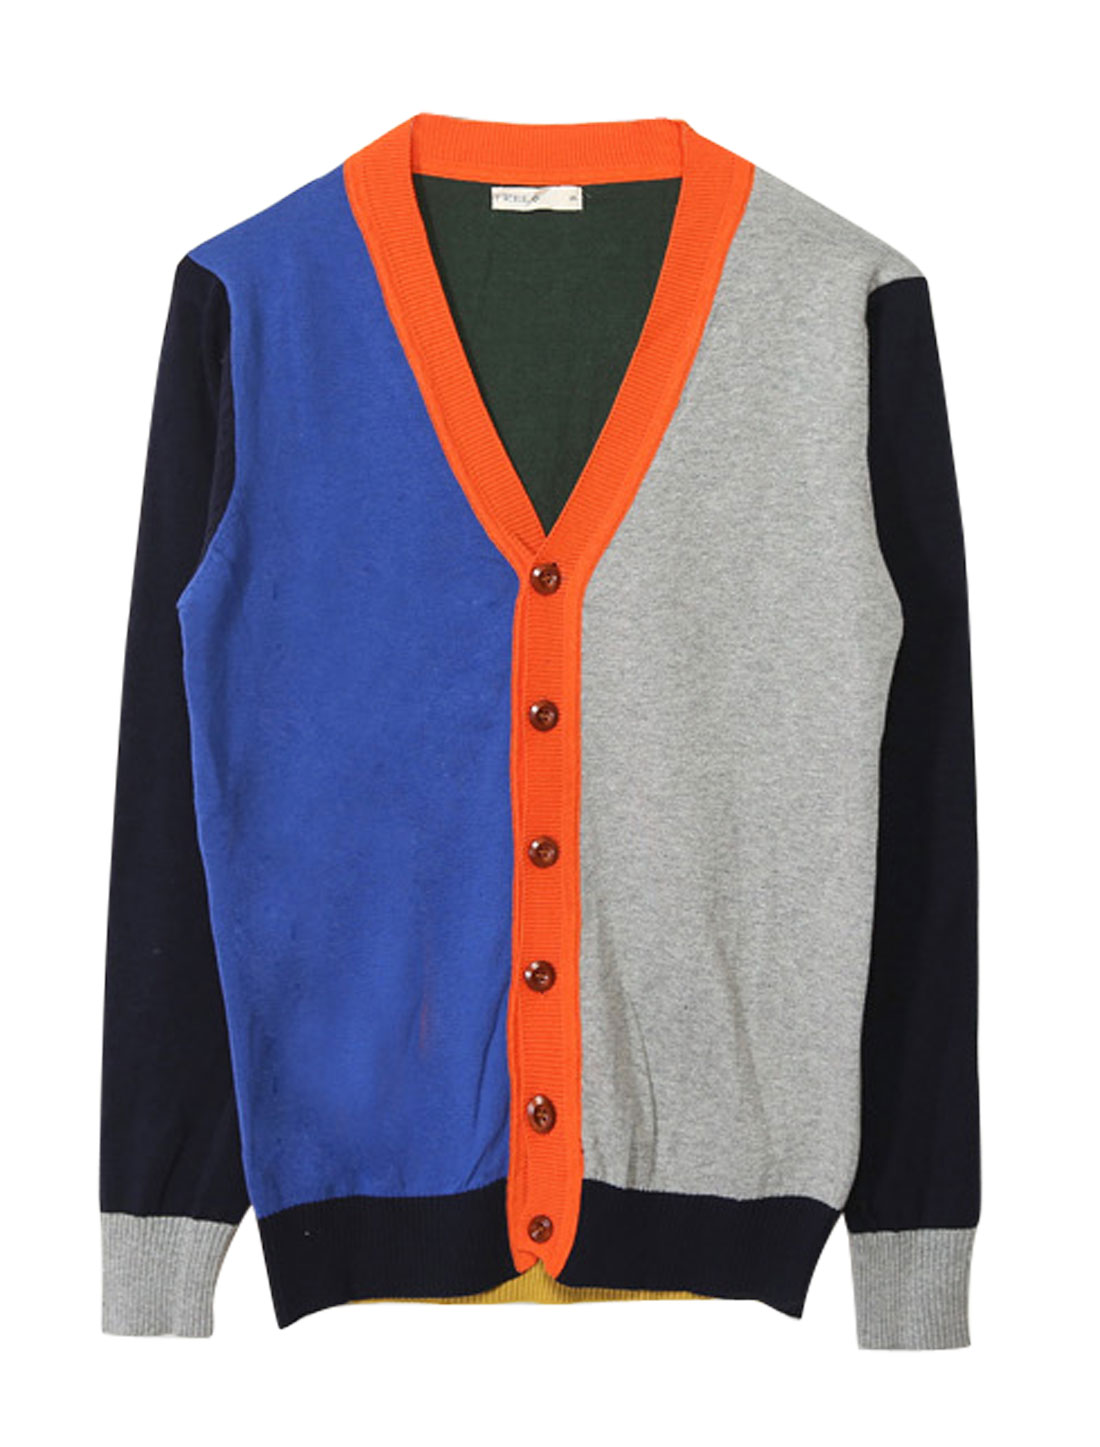 Man Long Sleeves Color Block Button Front Blue Gray Knit Cardigan M